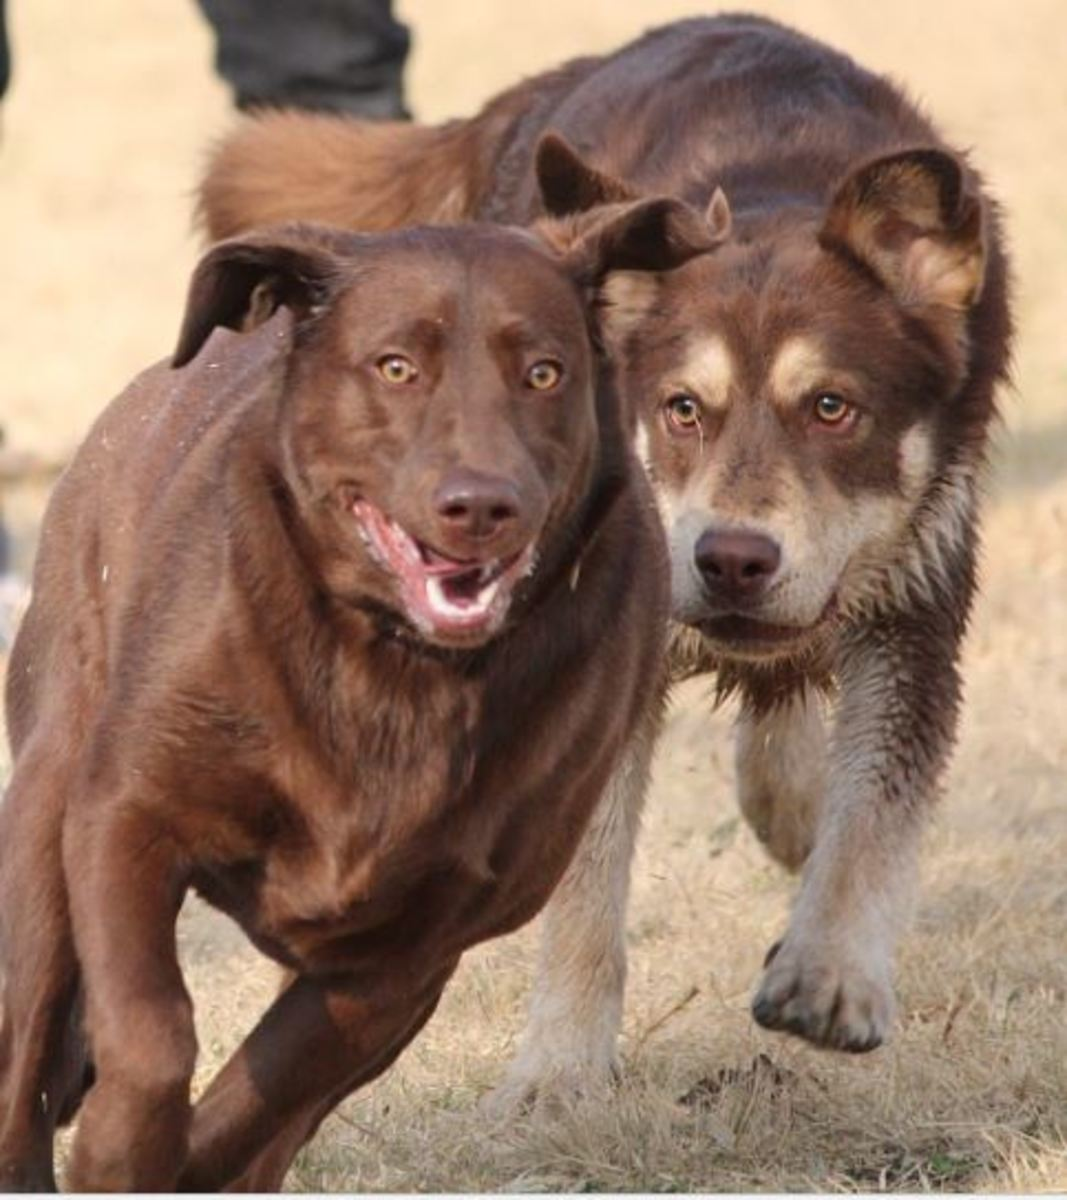 Redirected aggression in dogs.